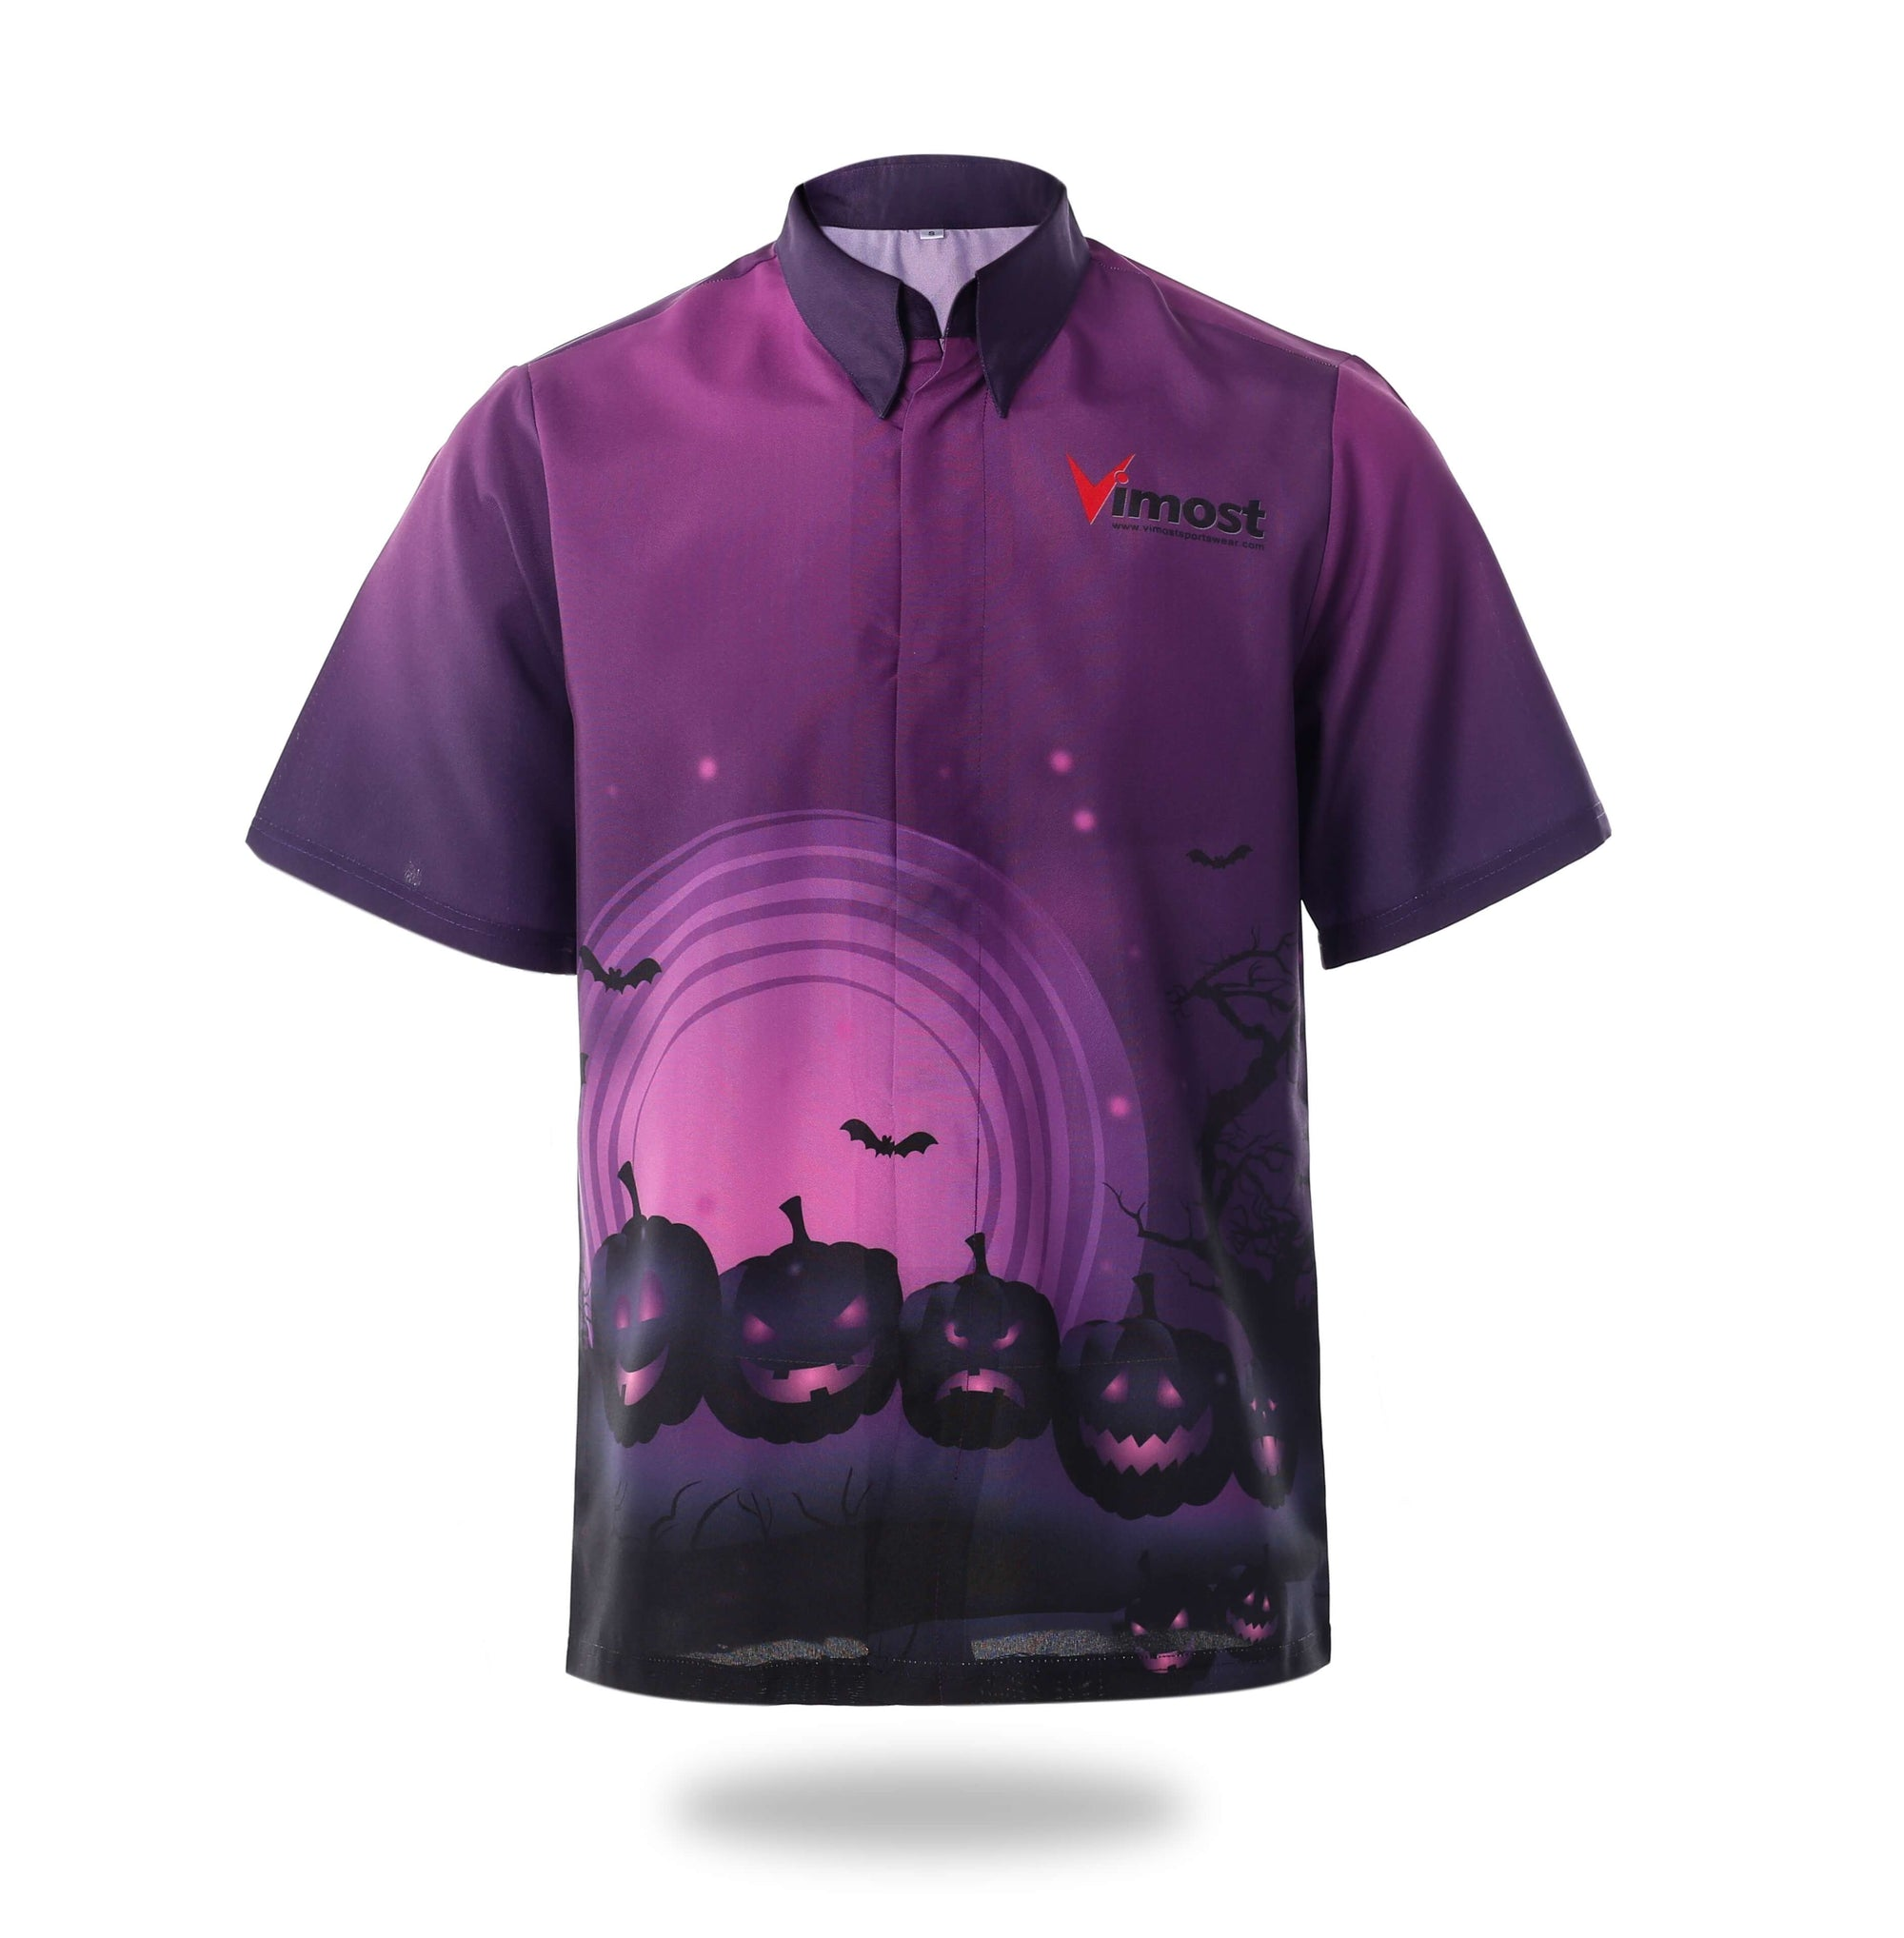 Sublimated Purple Halloween Design Mens Shirts-Vimost Sports